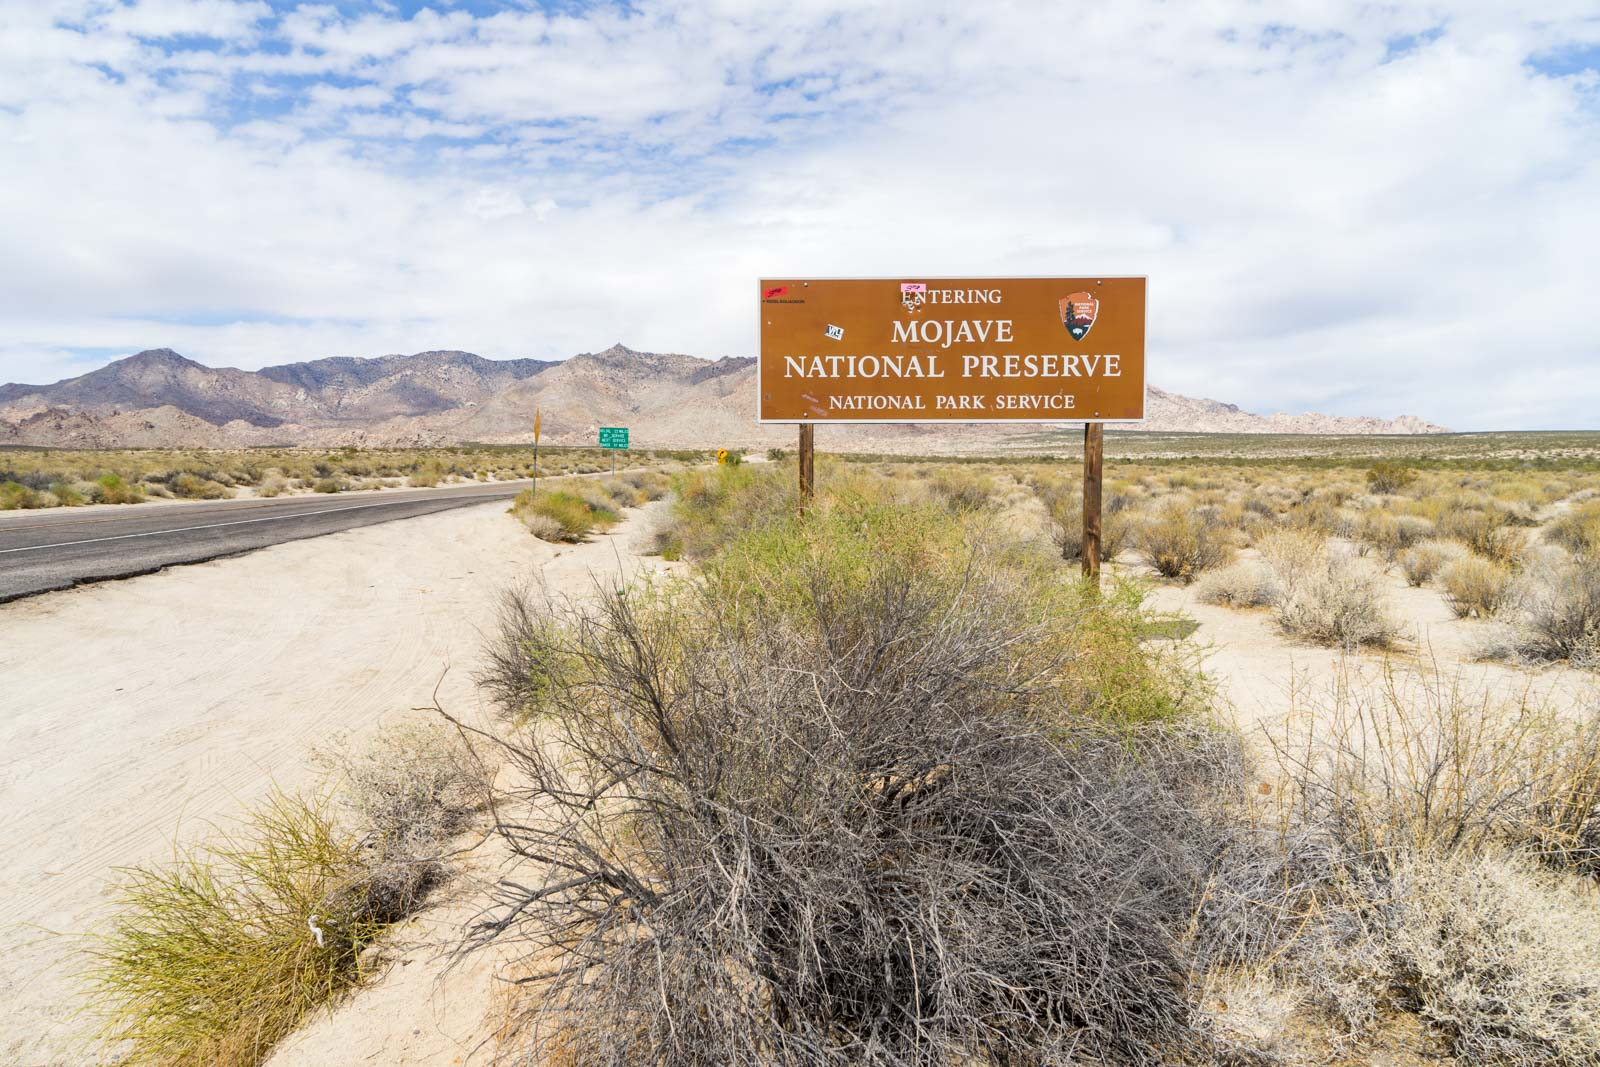 Mojave National Preserve guide, California, USA